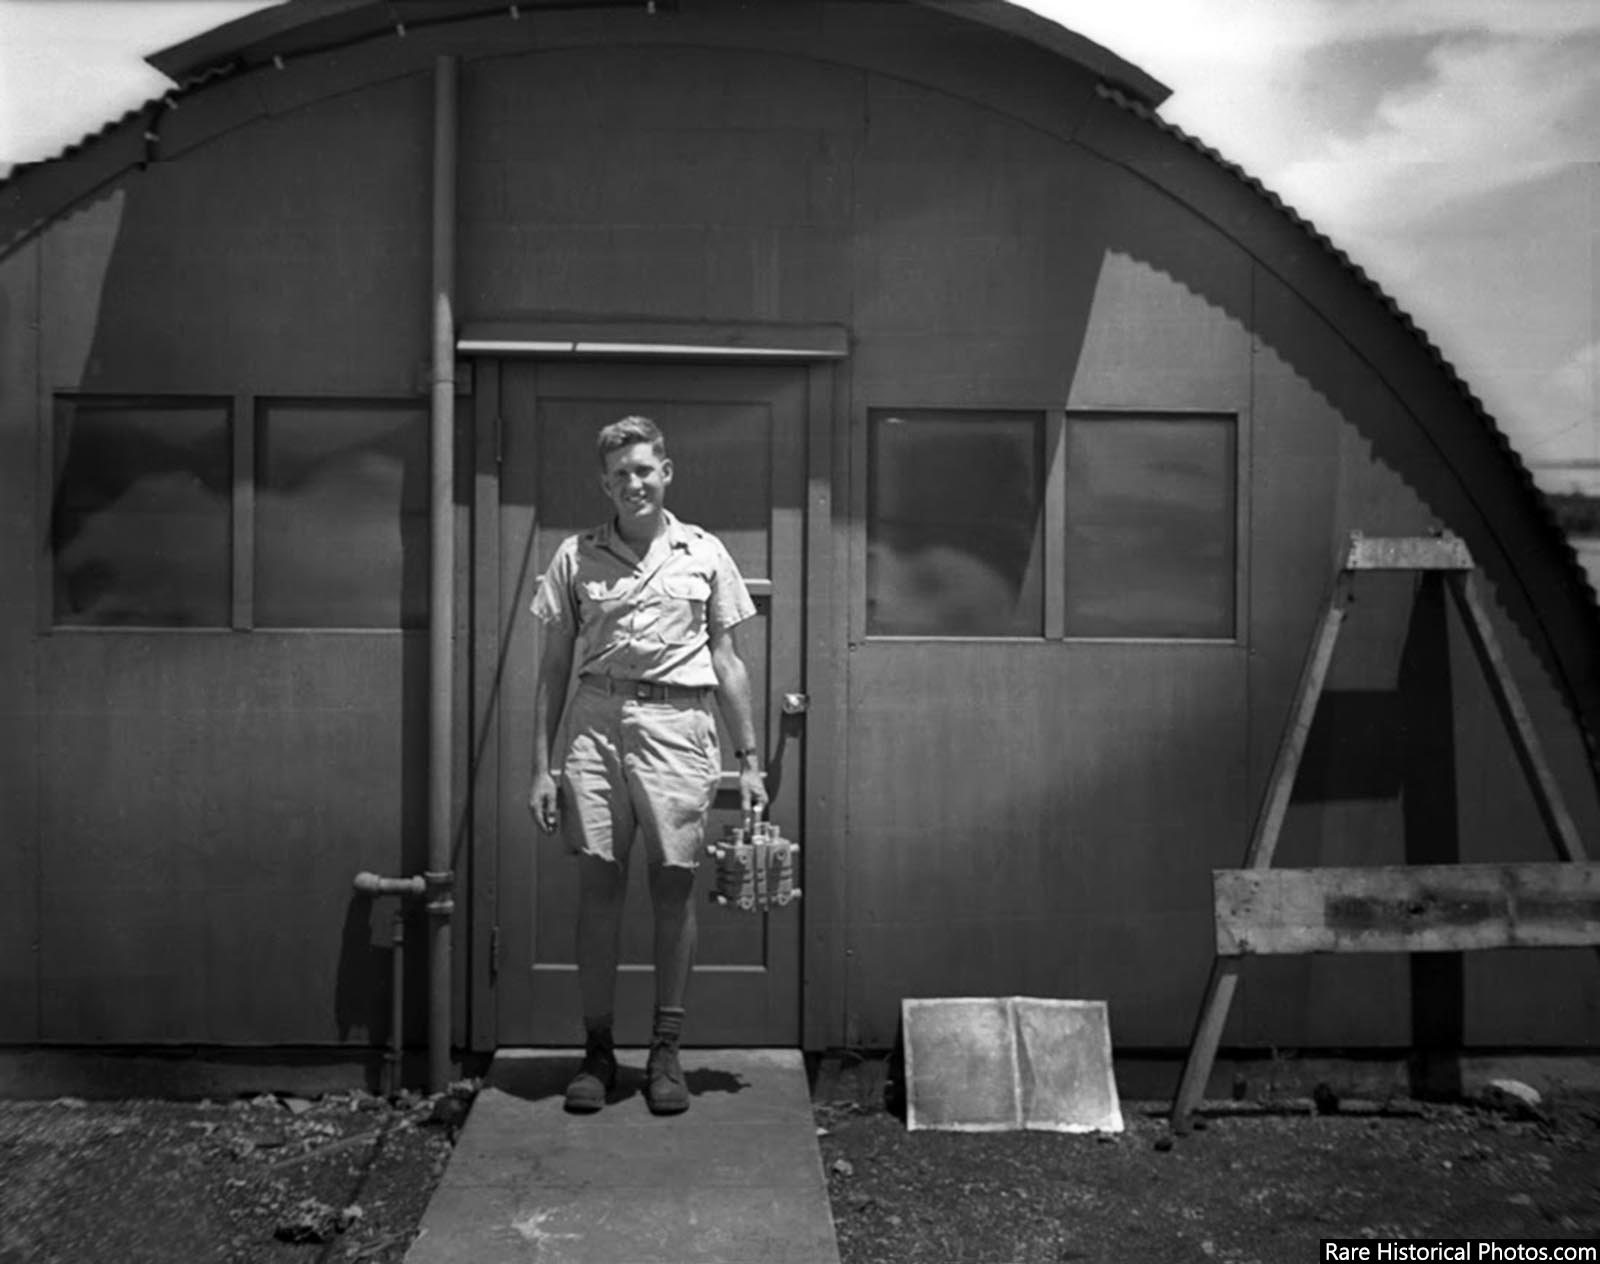 Harold Agnew on Tinian in 1945, carrying the plutonium core of the Nagasaki Fat Man bomb.